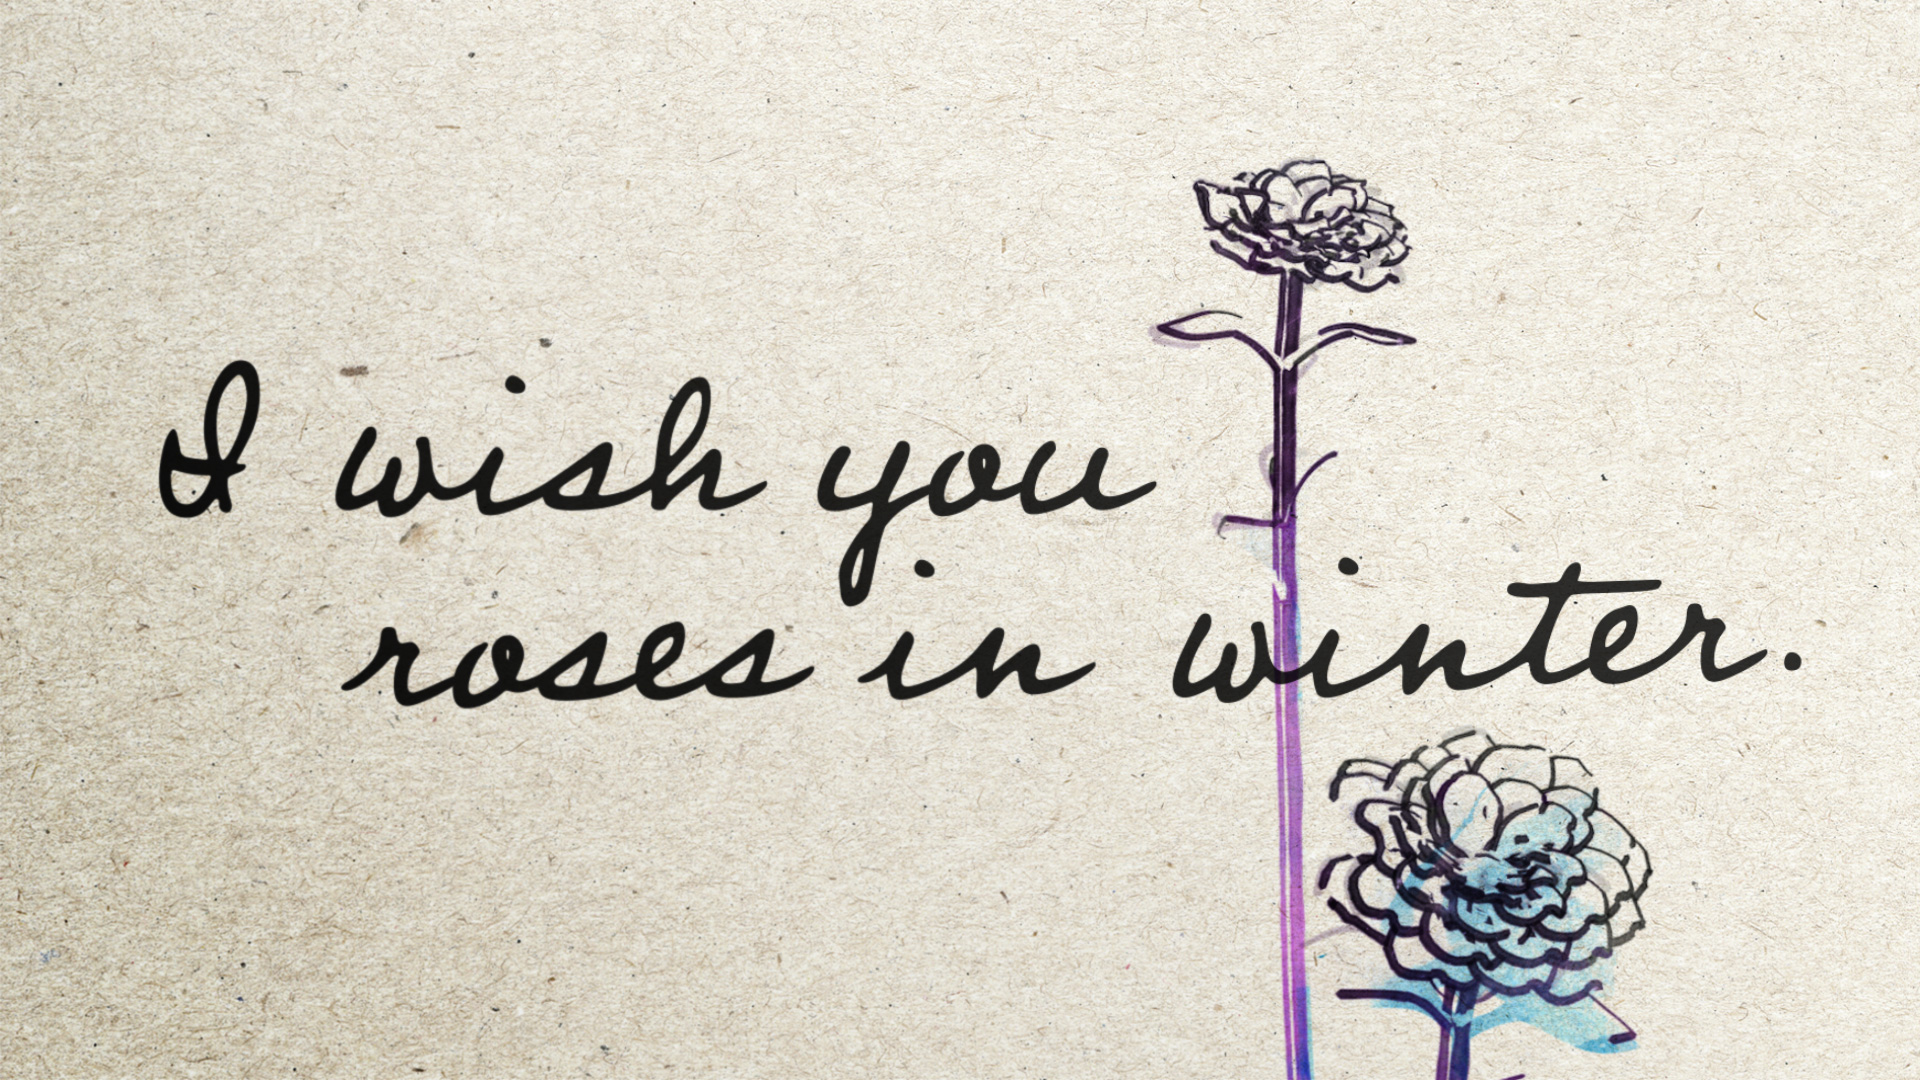 35letters_wishes (02171).jpg